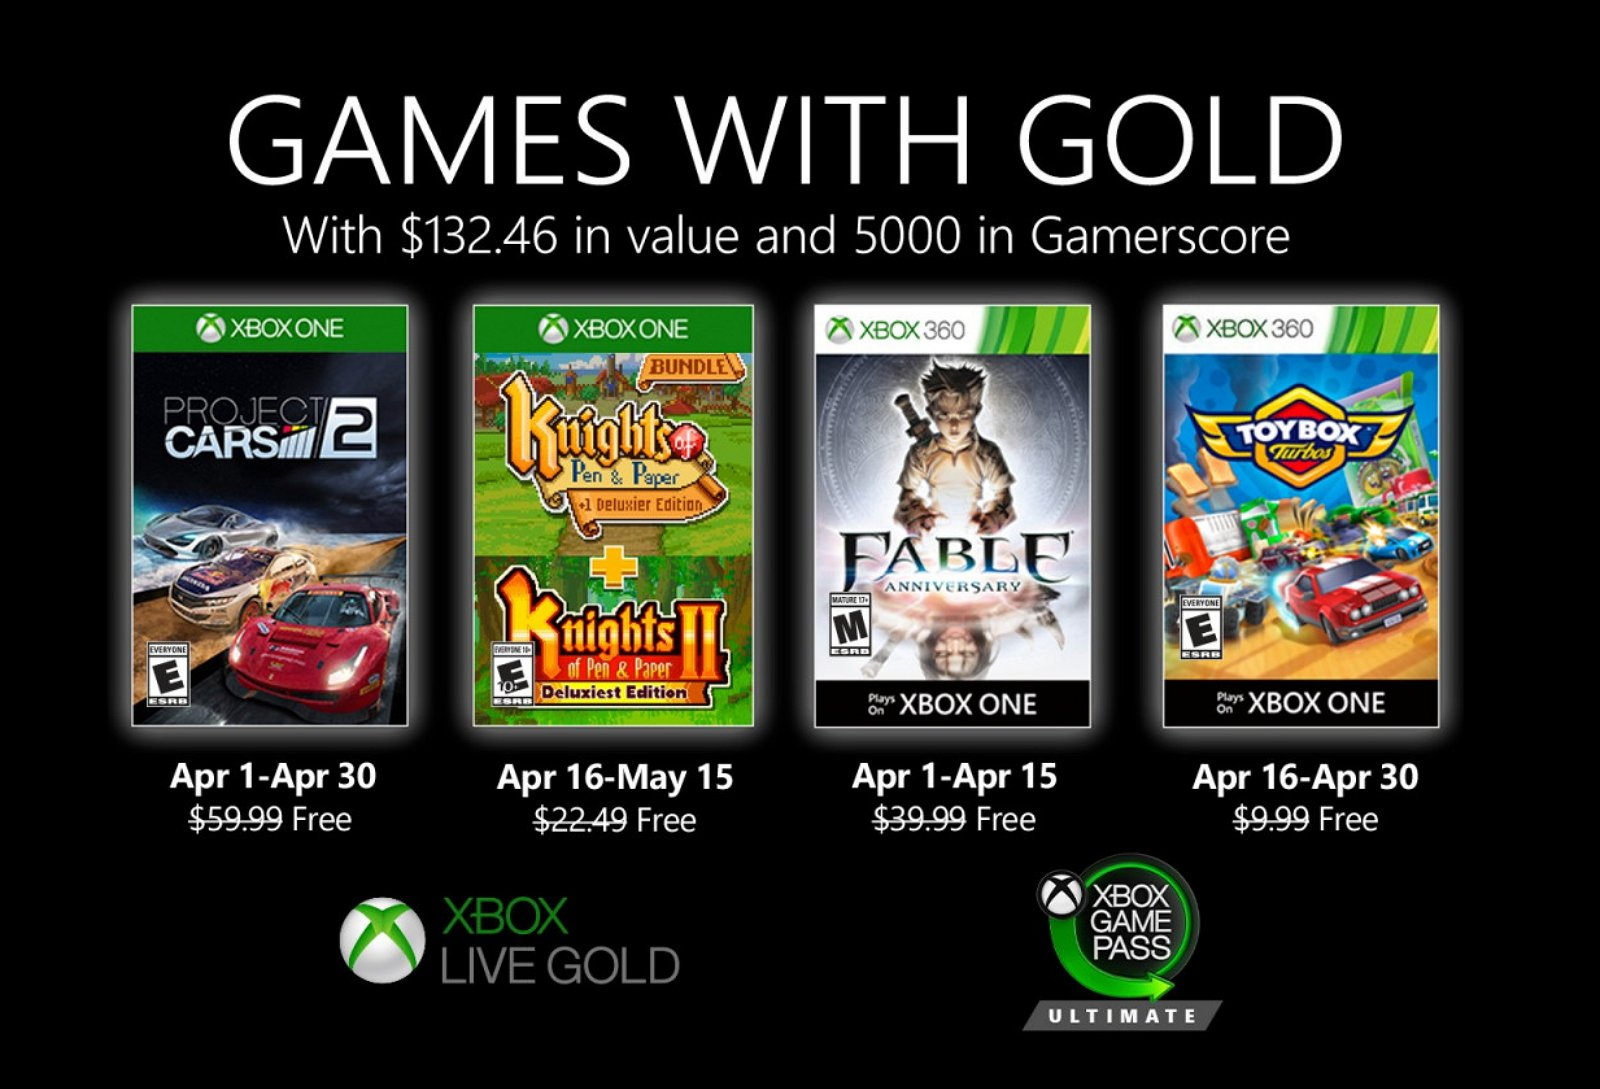 Xbox Games with Gold for April 2020 (source: Microsoft)